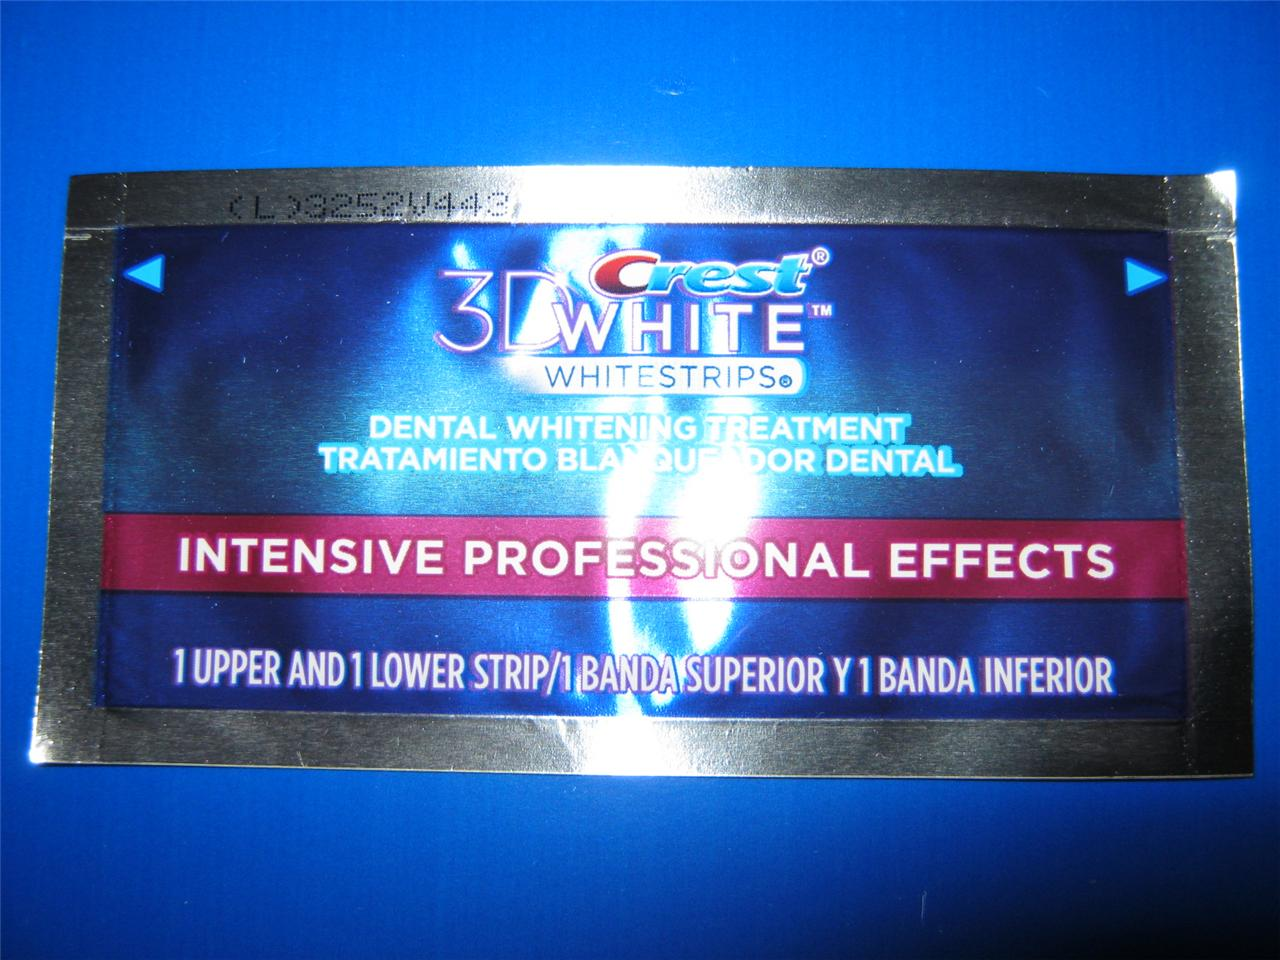 Crest-3D-INTENSIVE-Professional-Effects-White-Strip-Whitestrips-Teeth-Whitening